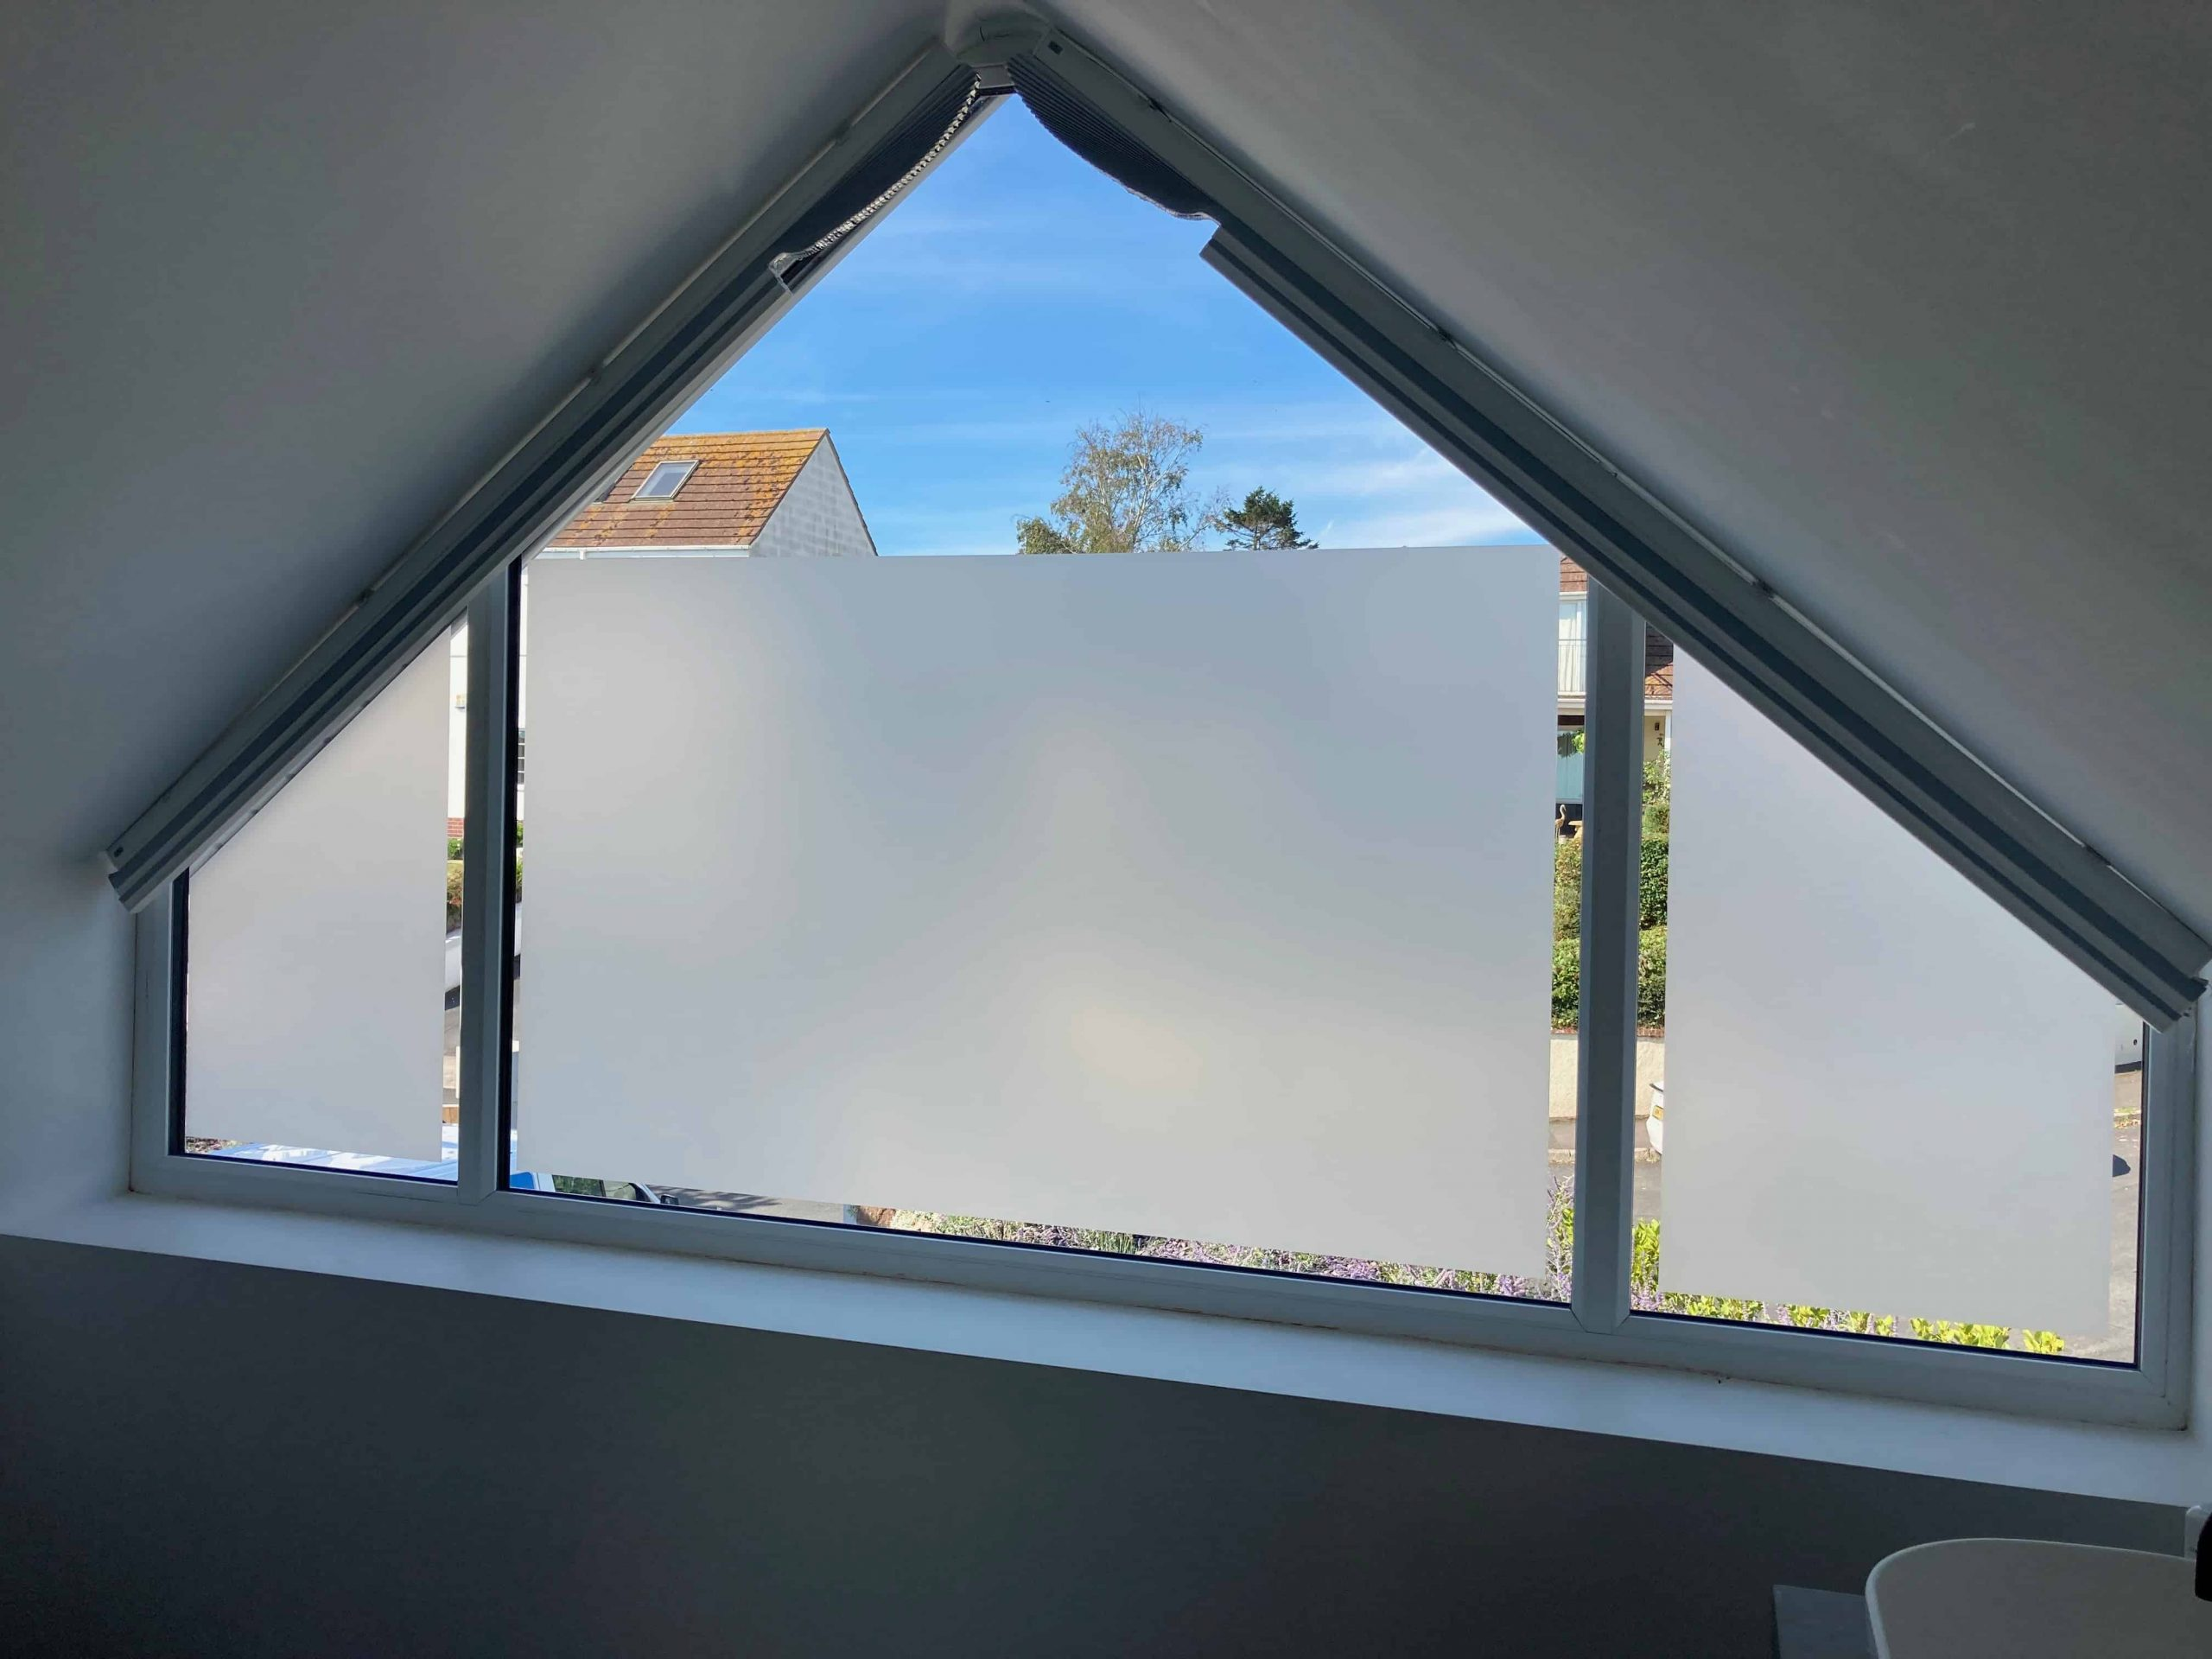 Hanita Matte Frosted Window Film with Vision Gap